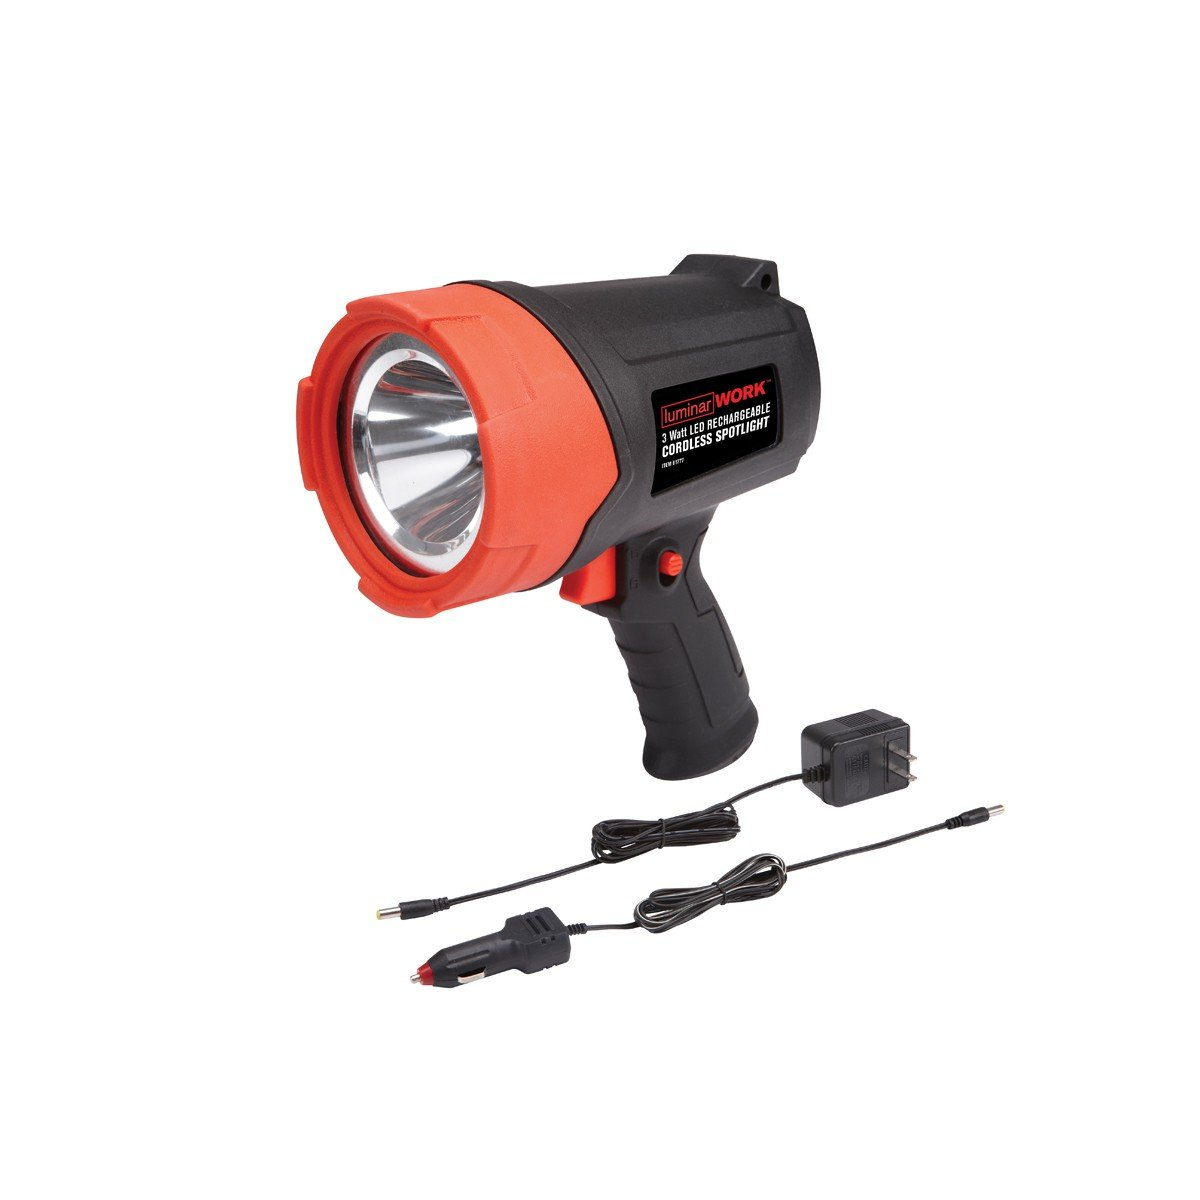 3 Watt LED Rechargeable Cordless Spotlight from TNM by Luminar Work